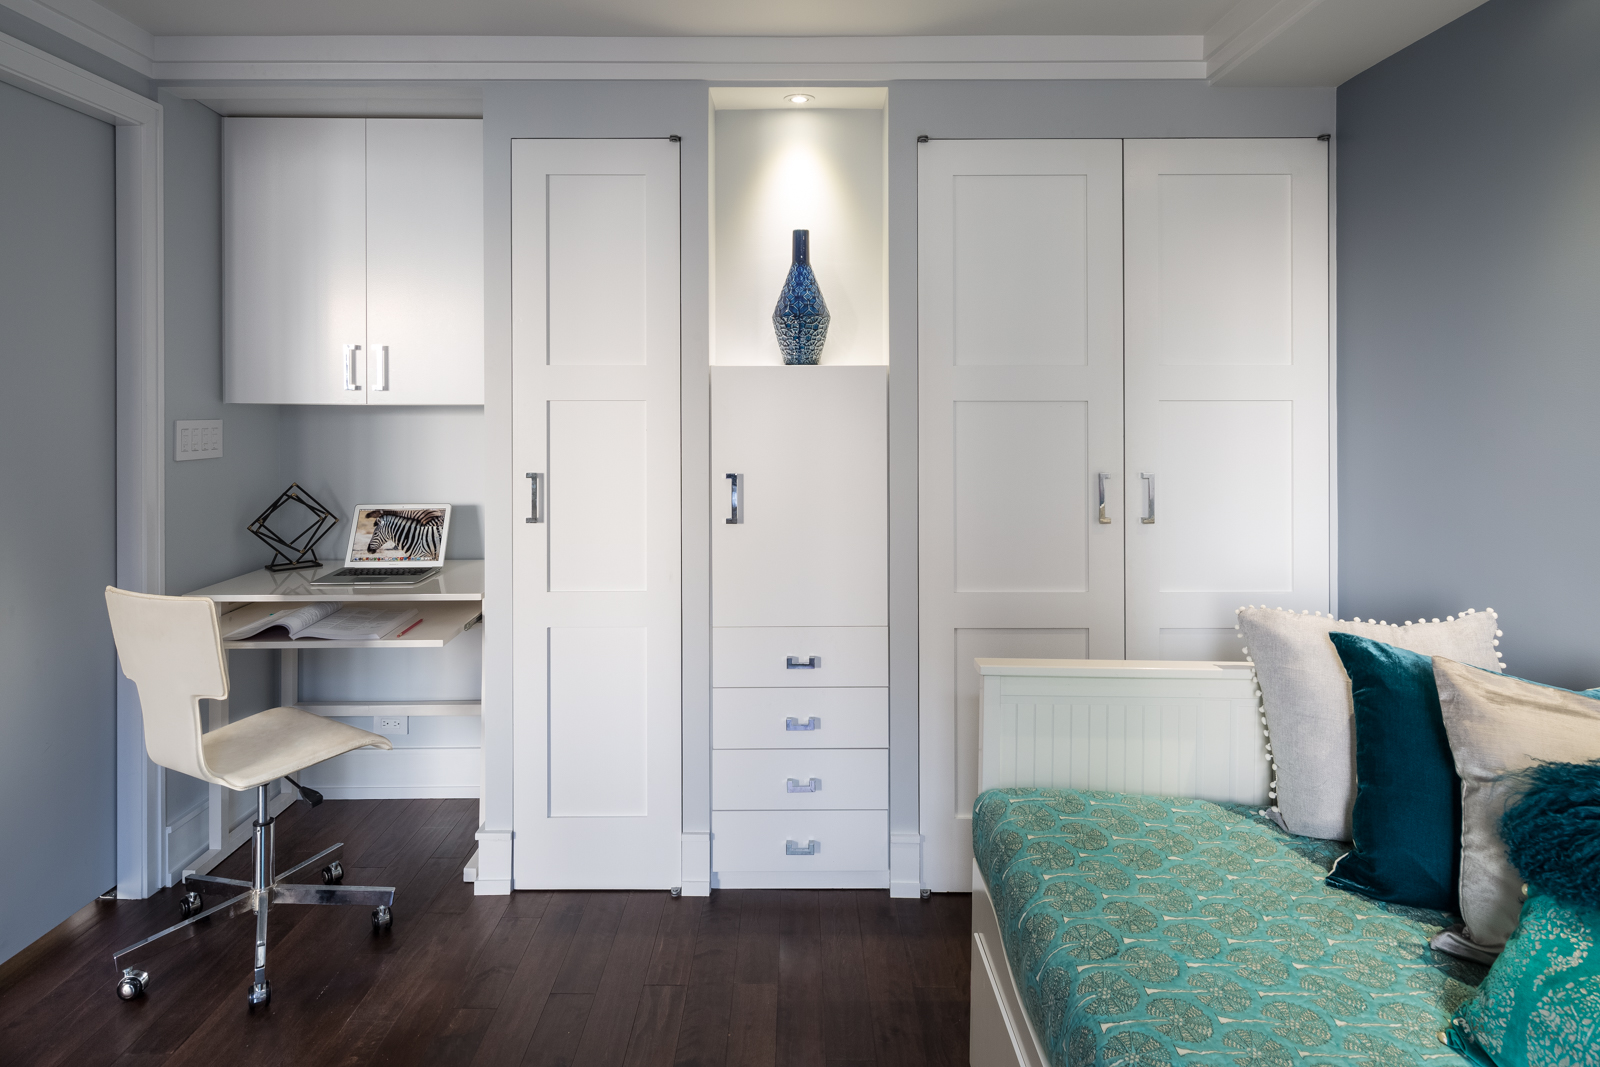 We designed a custom niche for the desk and created additional storage in the room. The pocket doors provide much needed privacy when needed to the room which otherwise is intended to be mostly open. These closets hide the pipes in the middle and we designed a spotlight to highlight the niche. We live for such design solutions!!